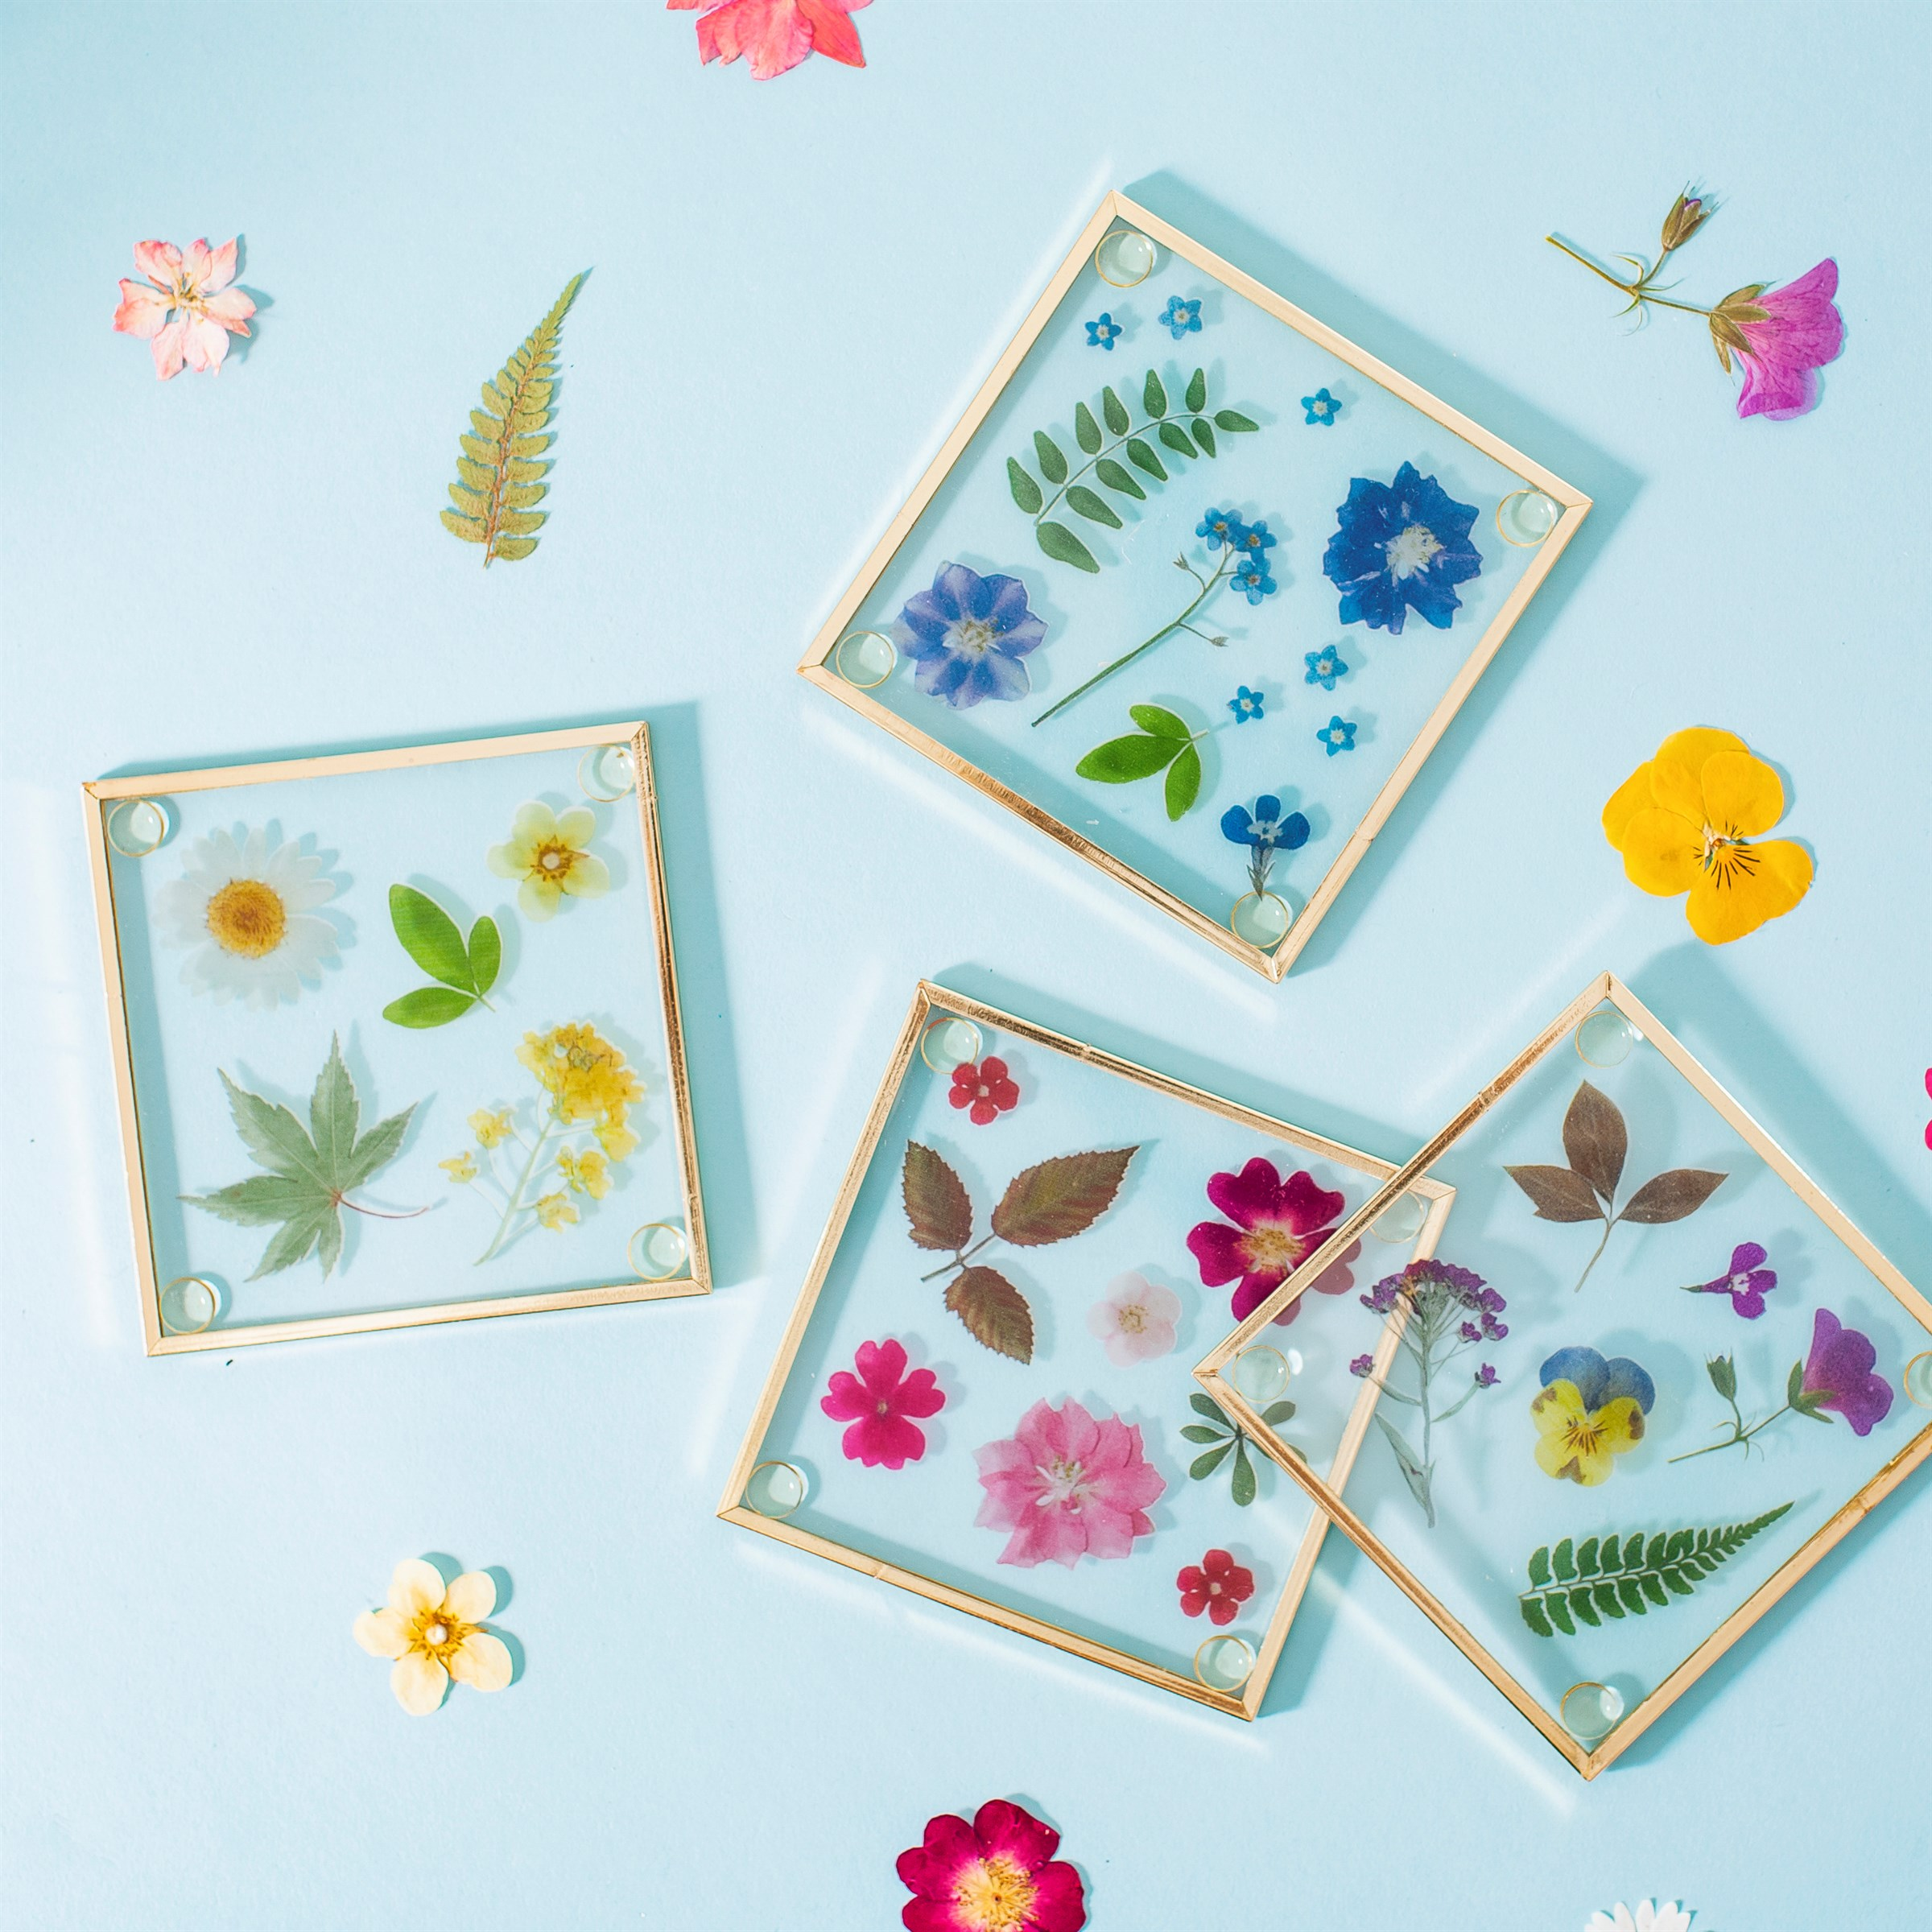 Pressed flower glass coasters by sass & belle